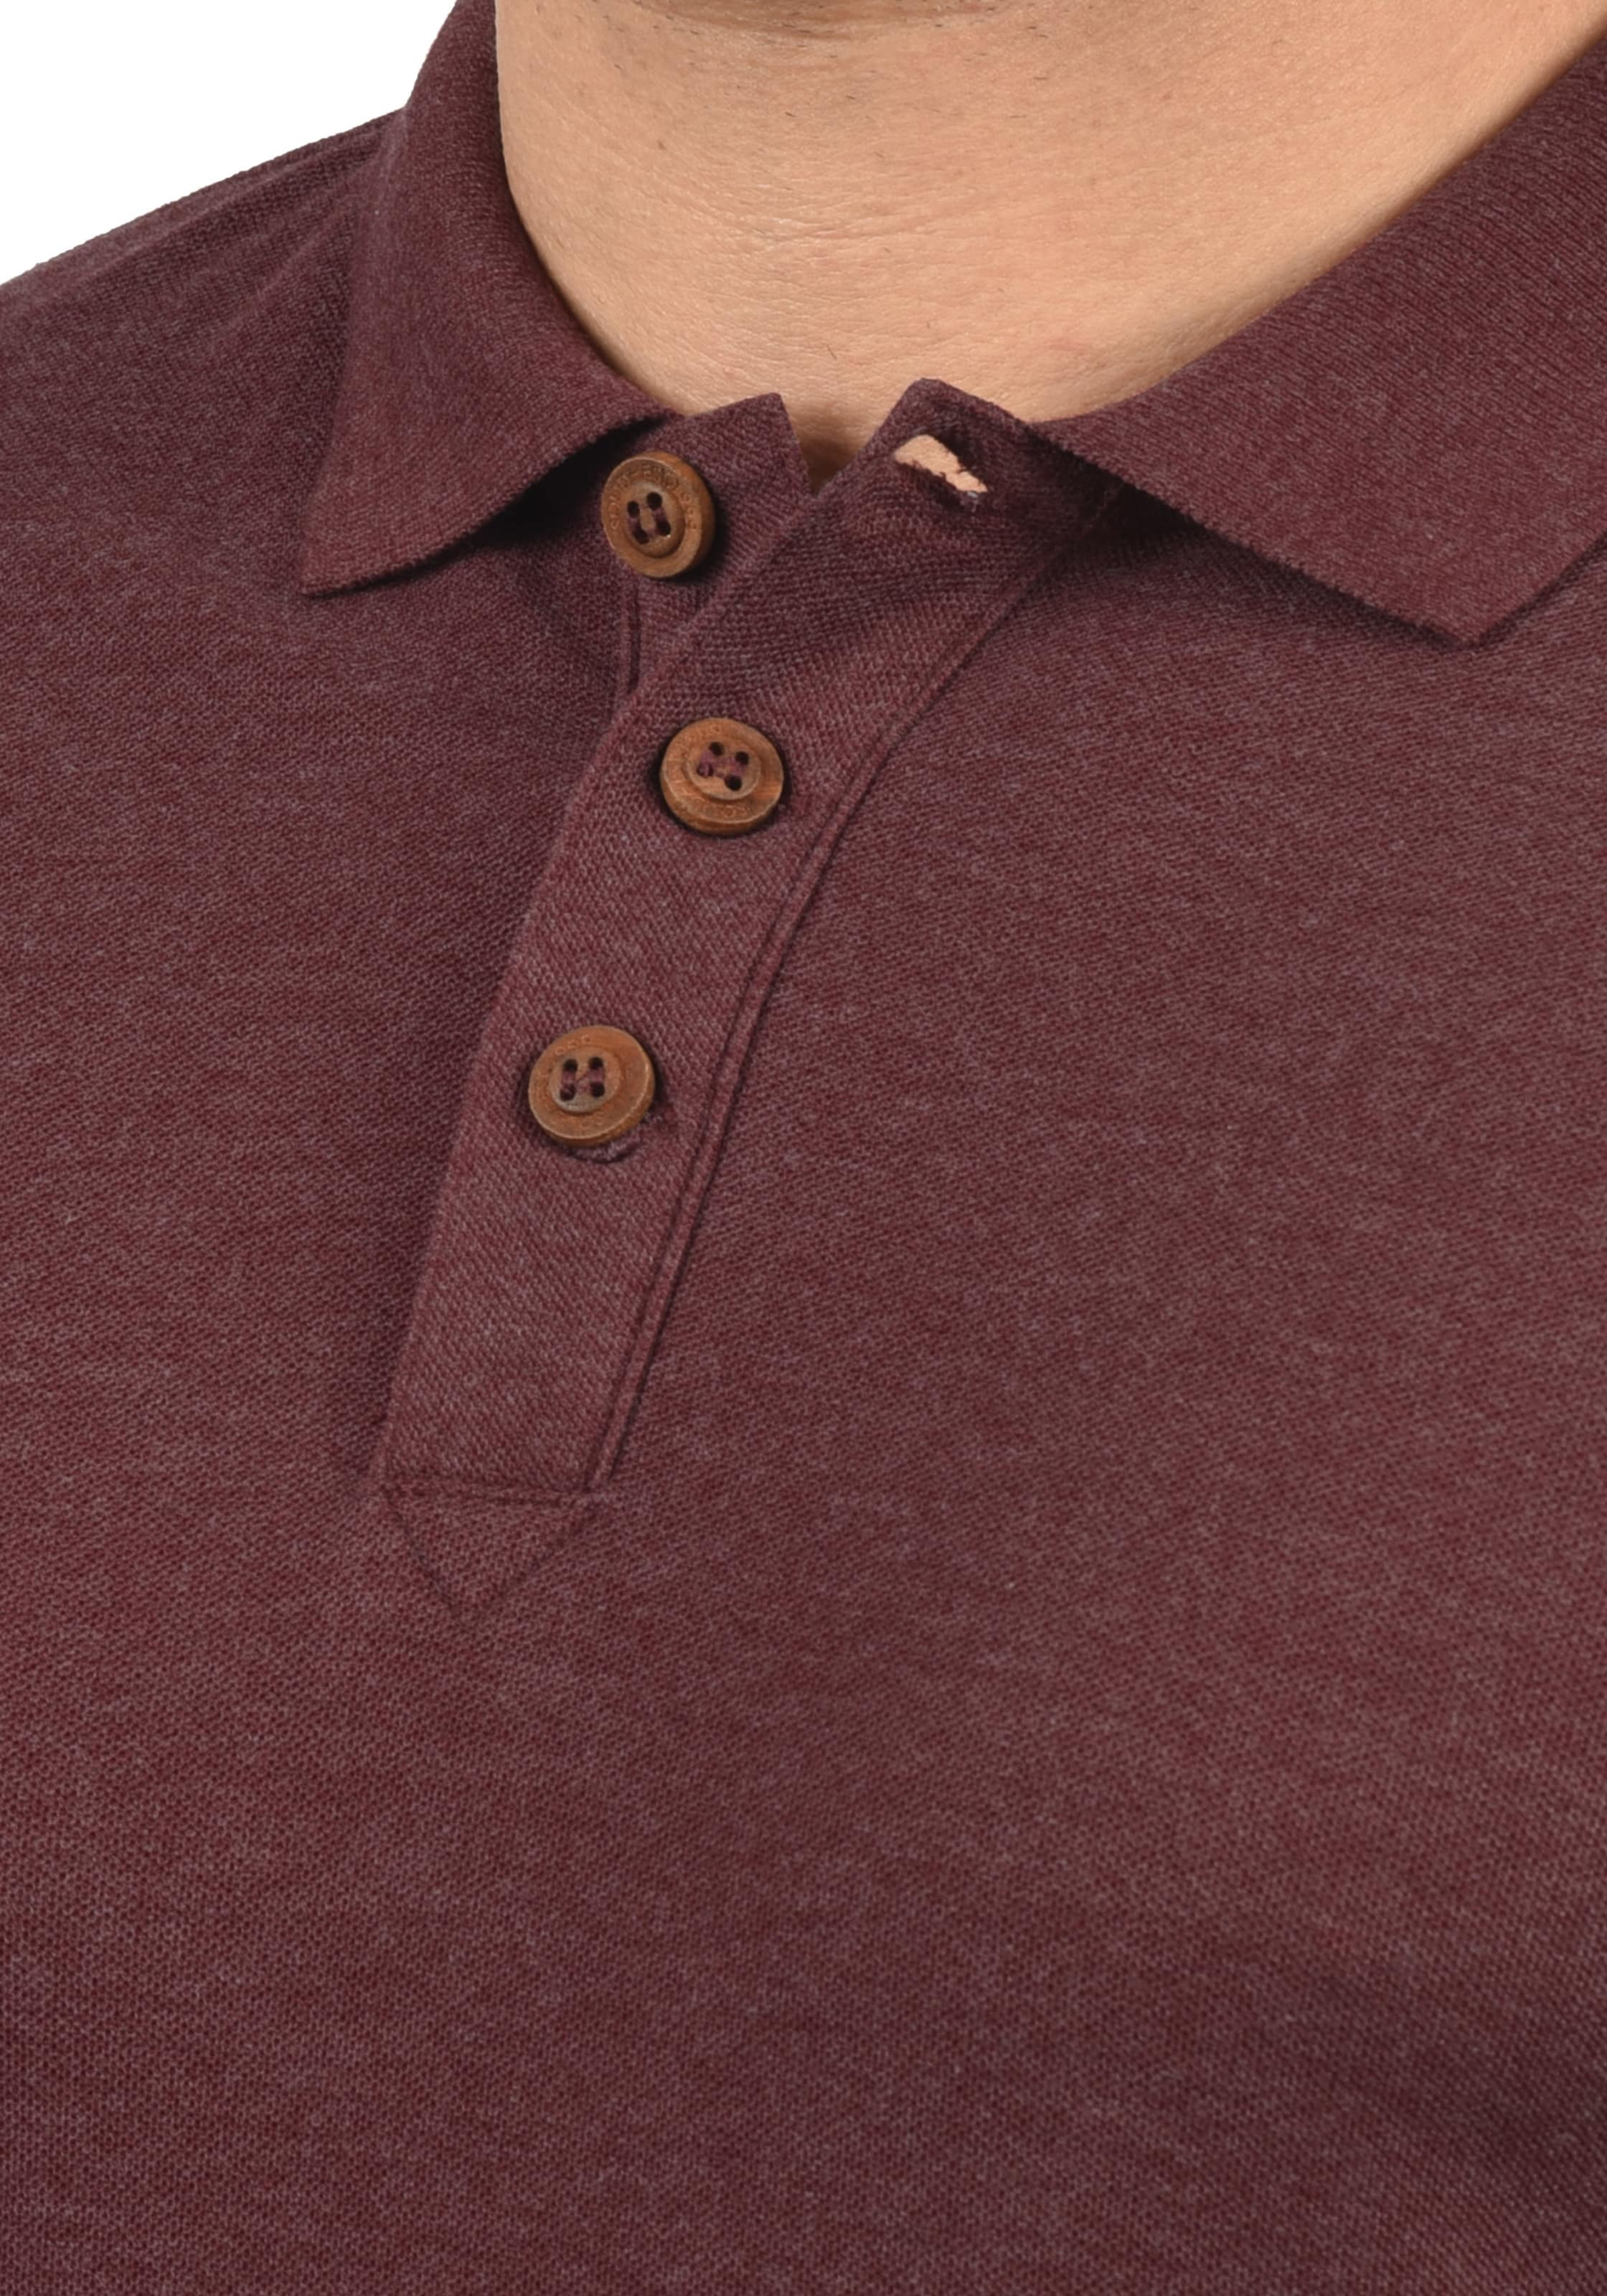 solid Poloshirt Weinrot In In Poloshirt solid 8O0wPXnk